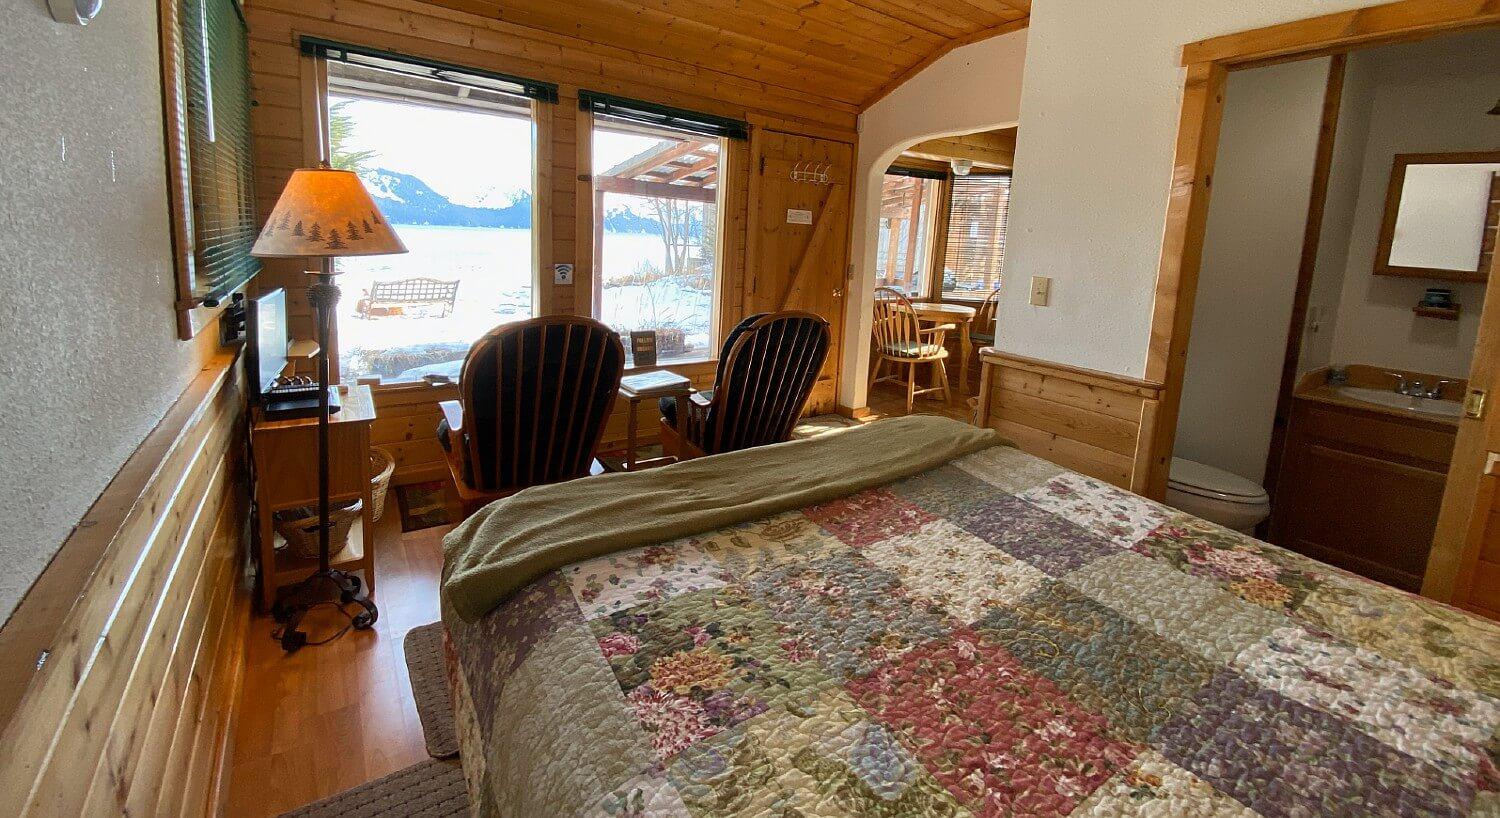 Room in a cabin featuring queen bed with a quilt and two sitting chairs in front of two large windows overlooking water and mountains